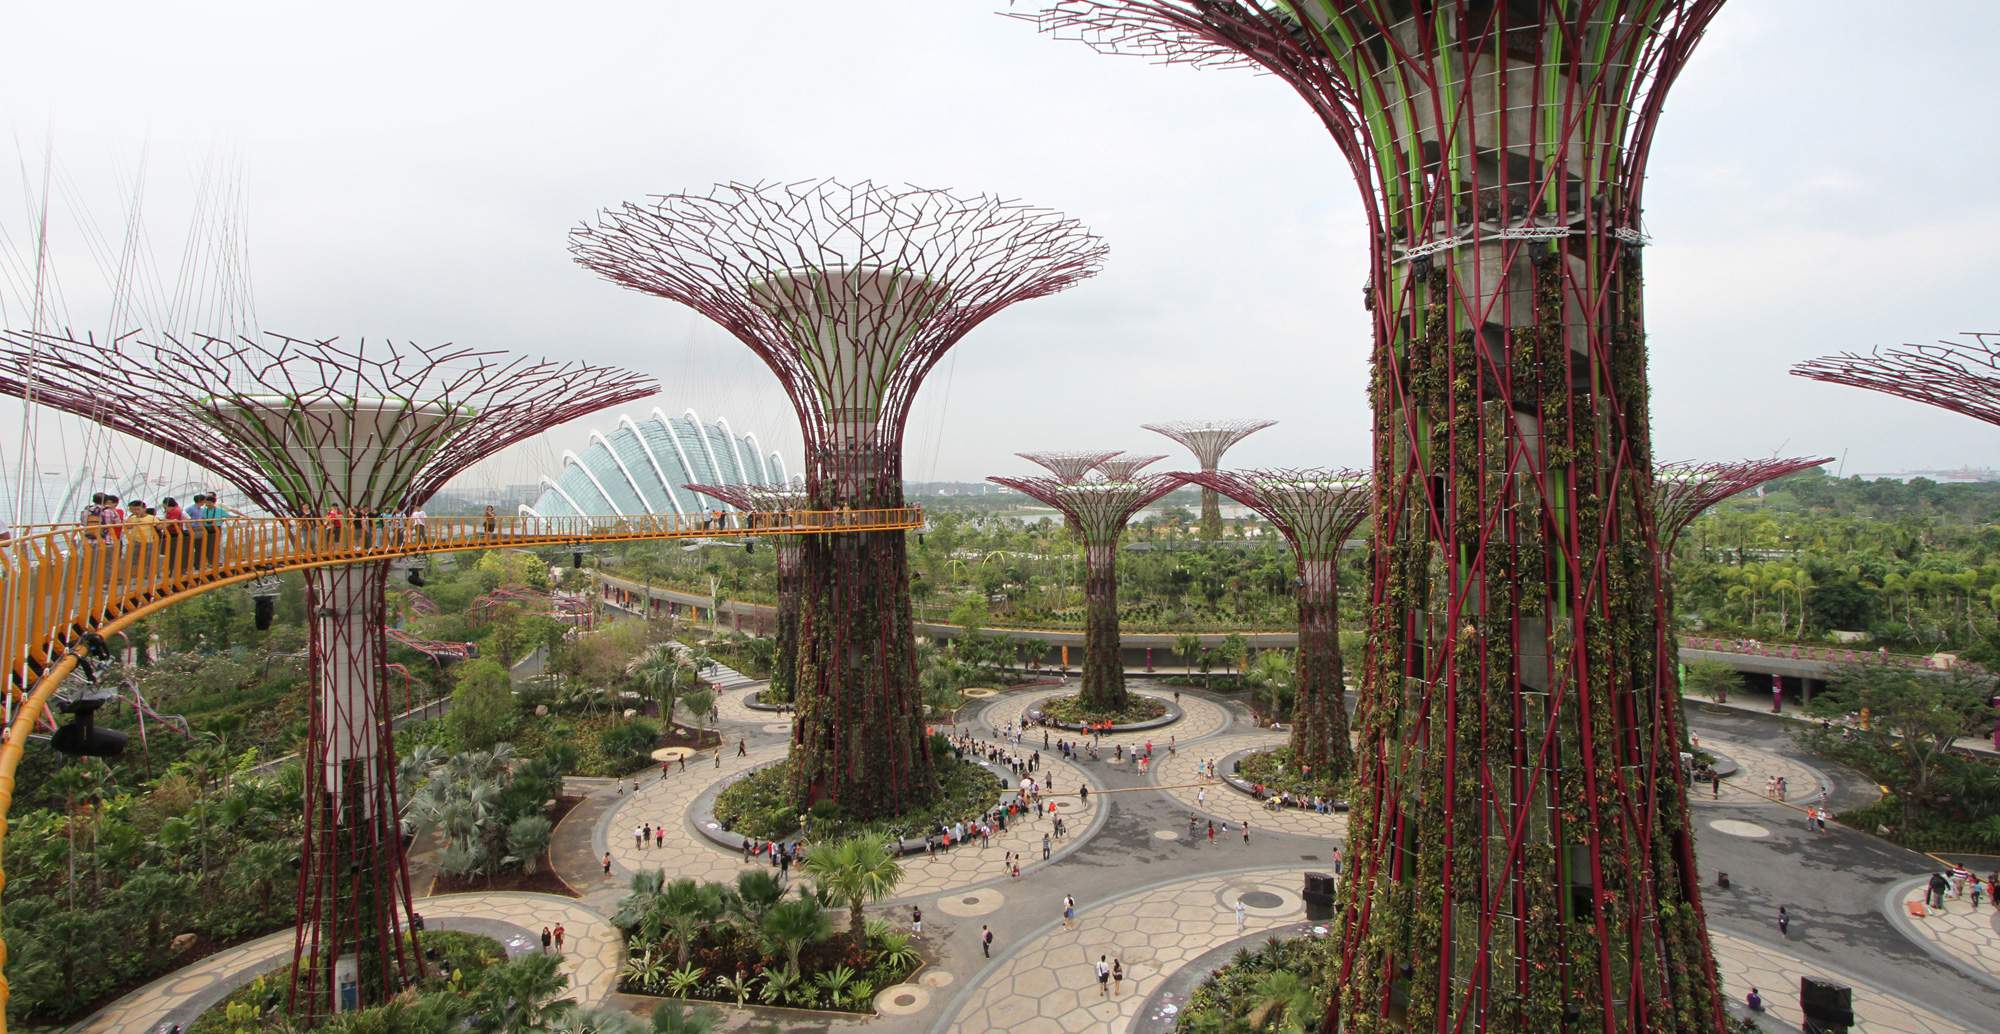 Gardens by the Bay at Marina Bay in Singapore